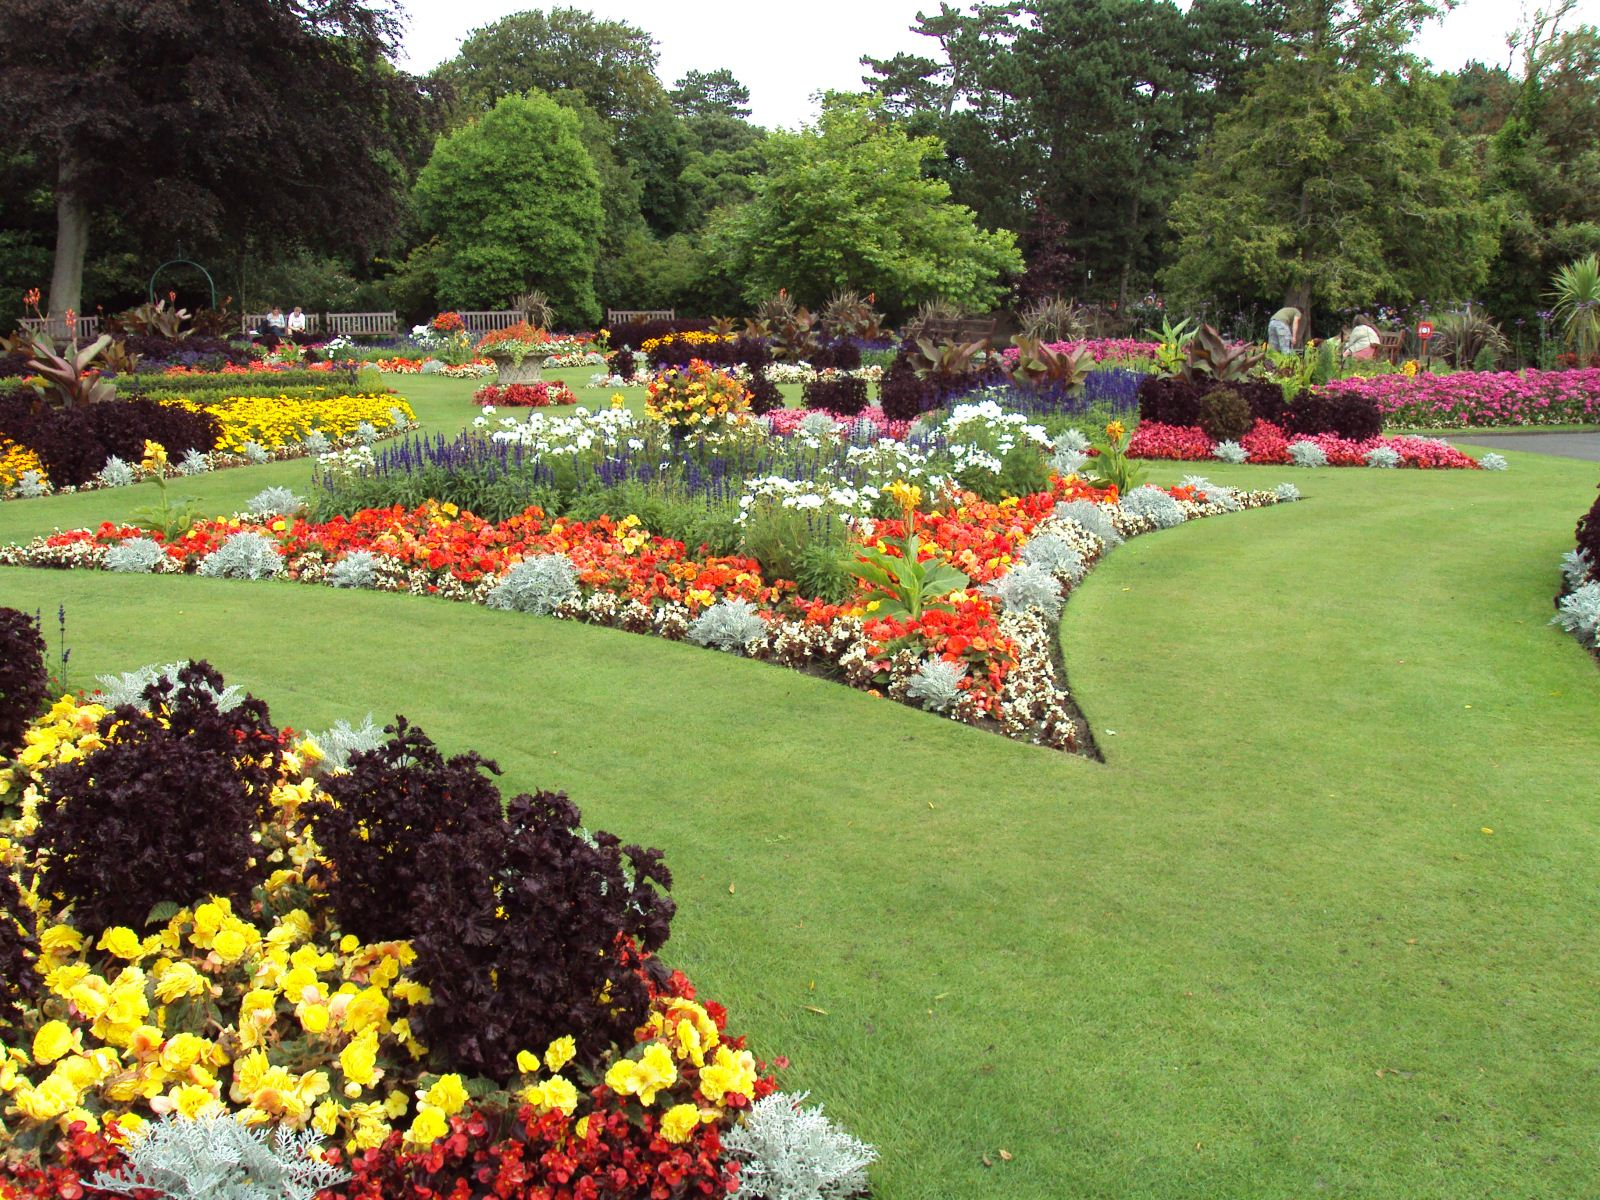 Flower_garden,_Botanic_Gardens,_Churchtown_2(1)